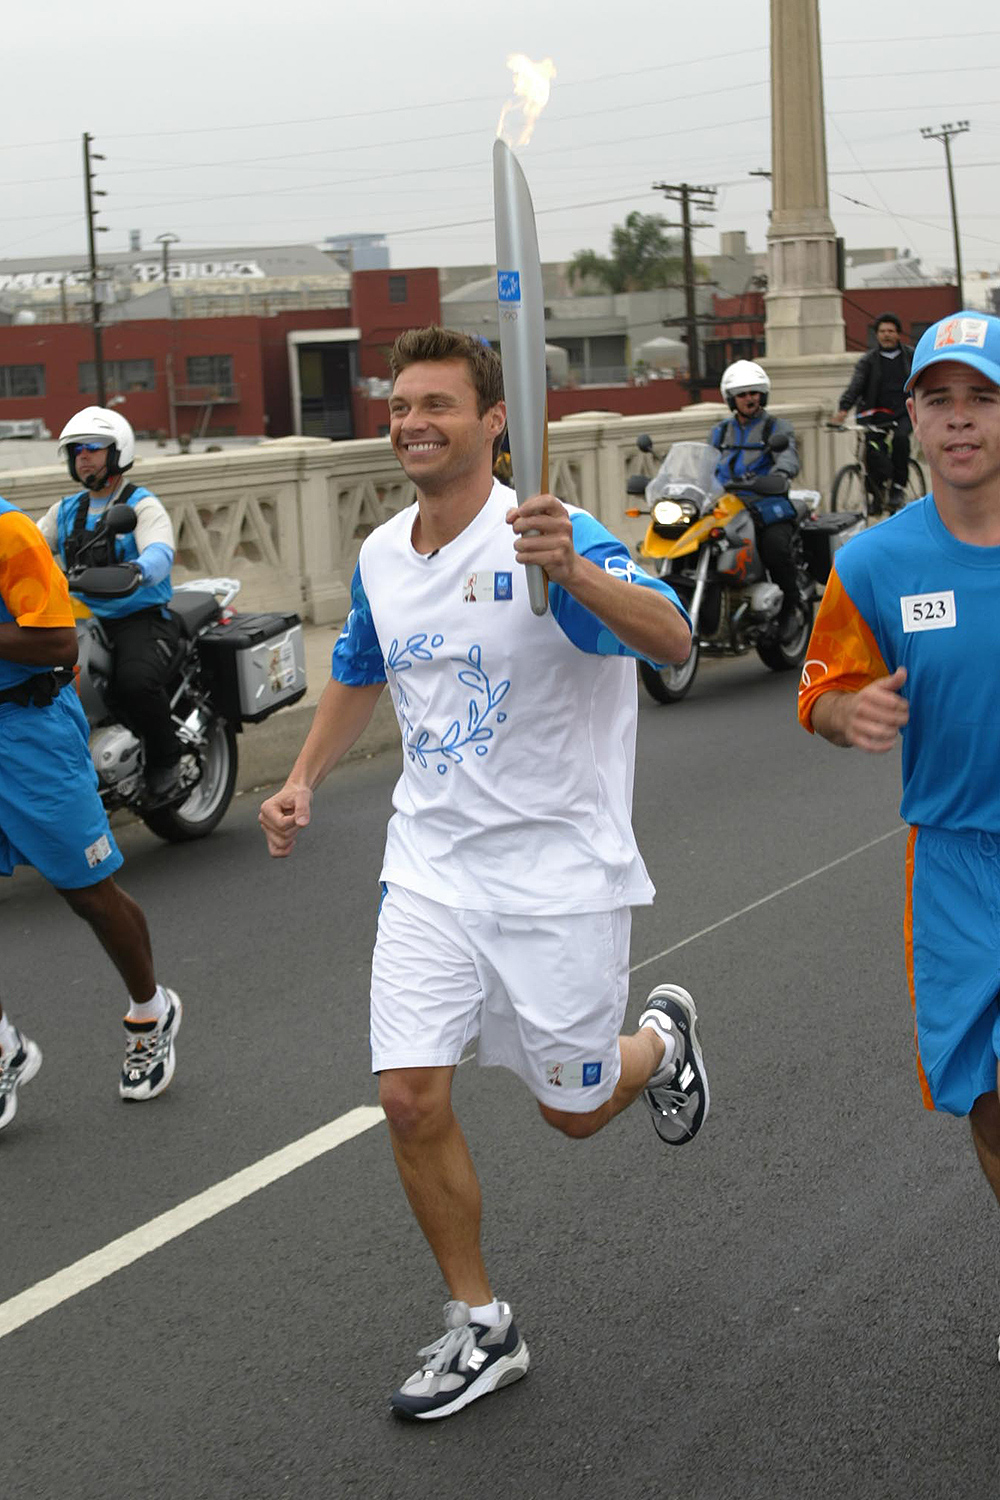 celebs Olympic torch relay